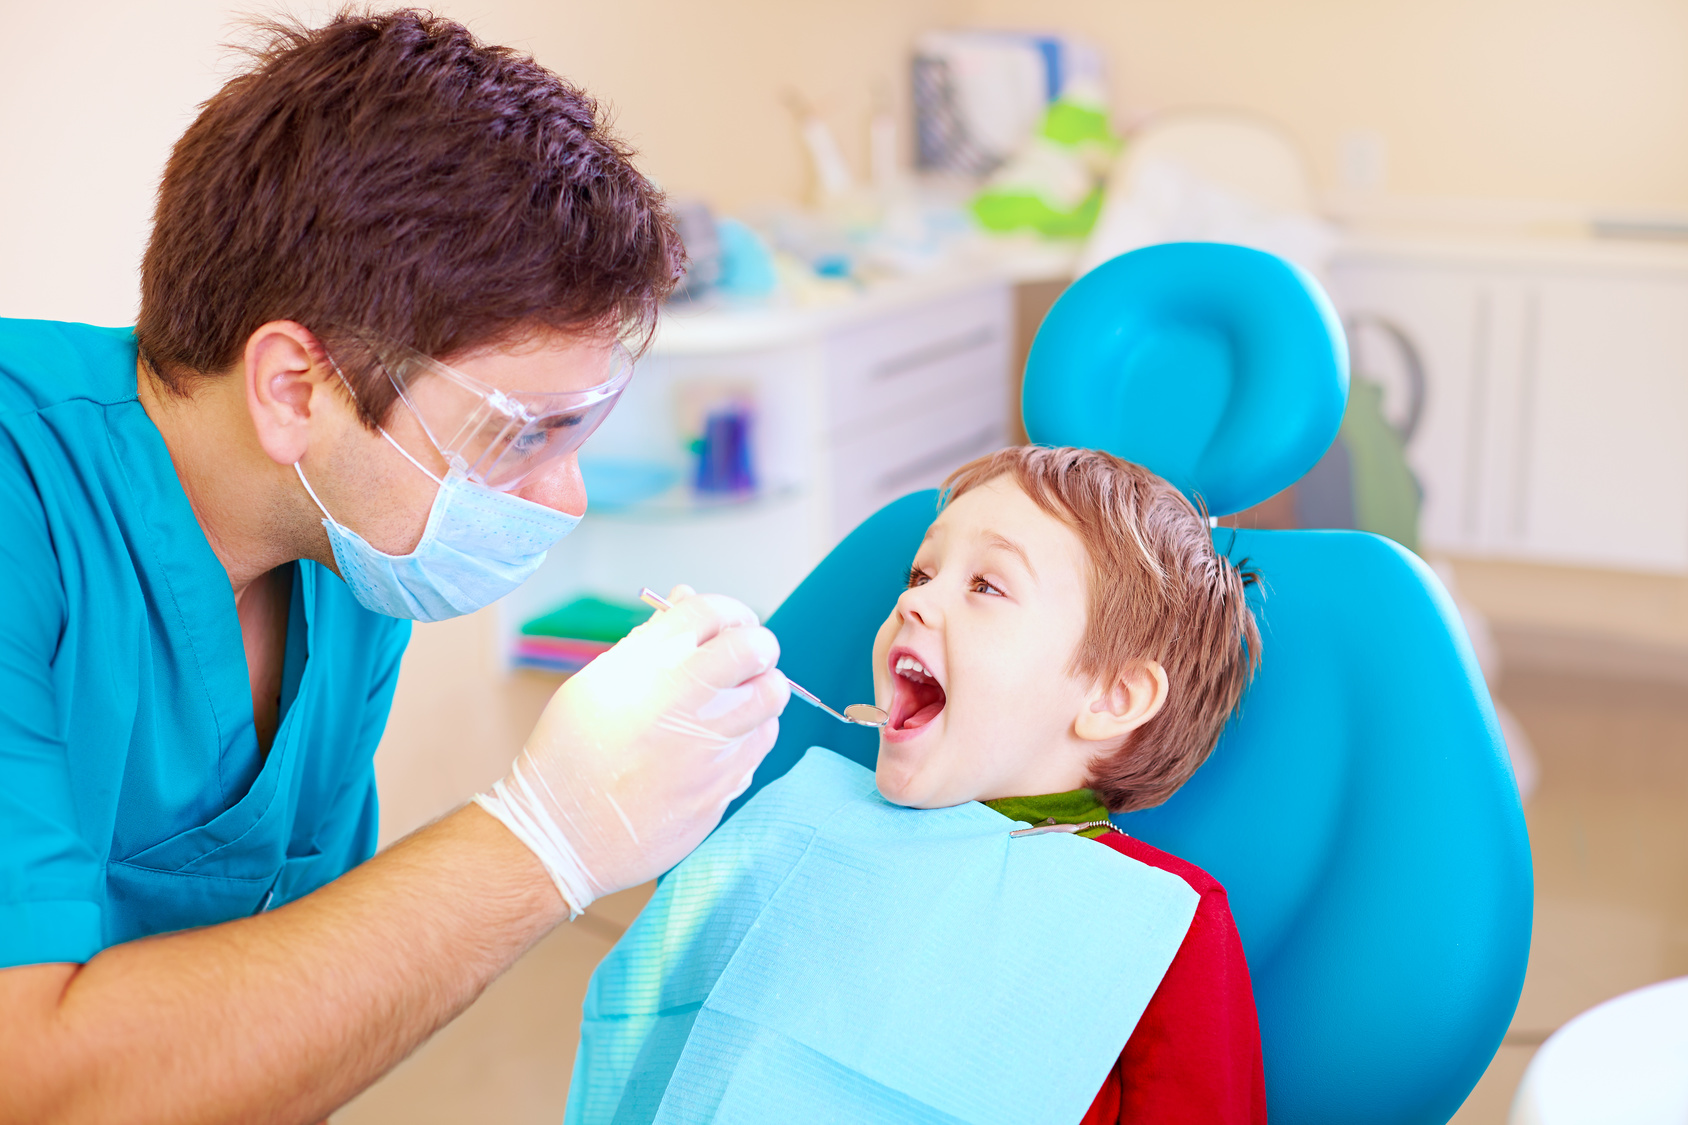 Get Your Kids Excited for the Dentist in 4 Simple Steps